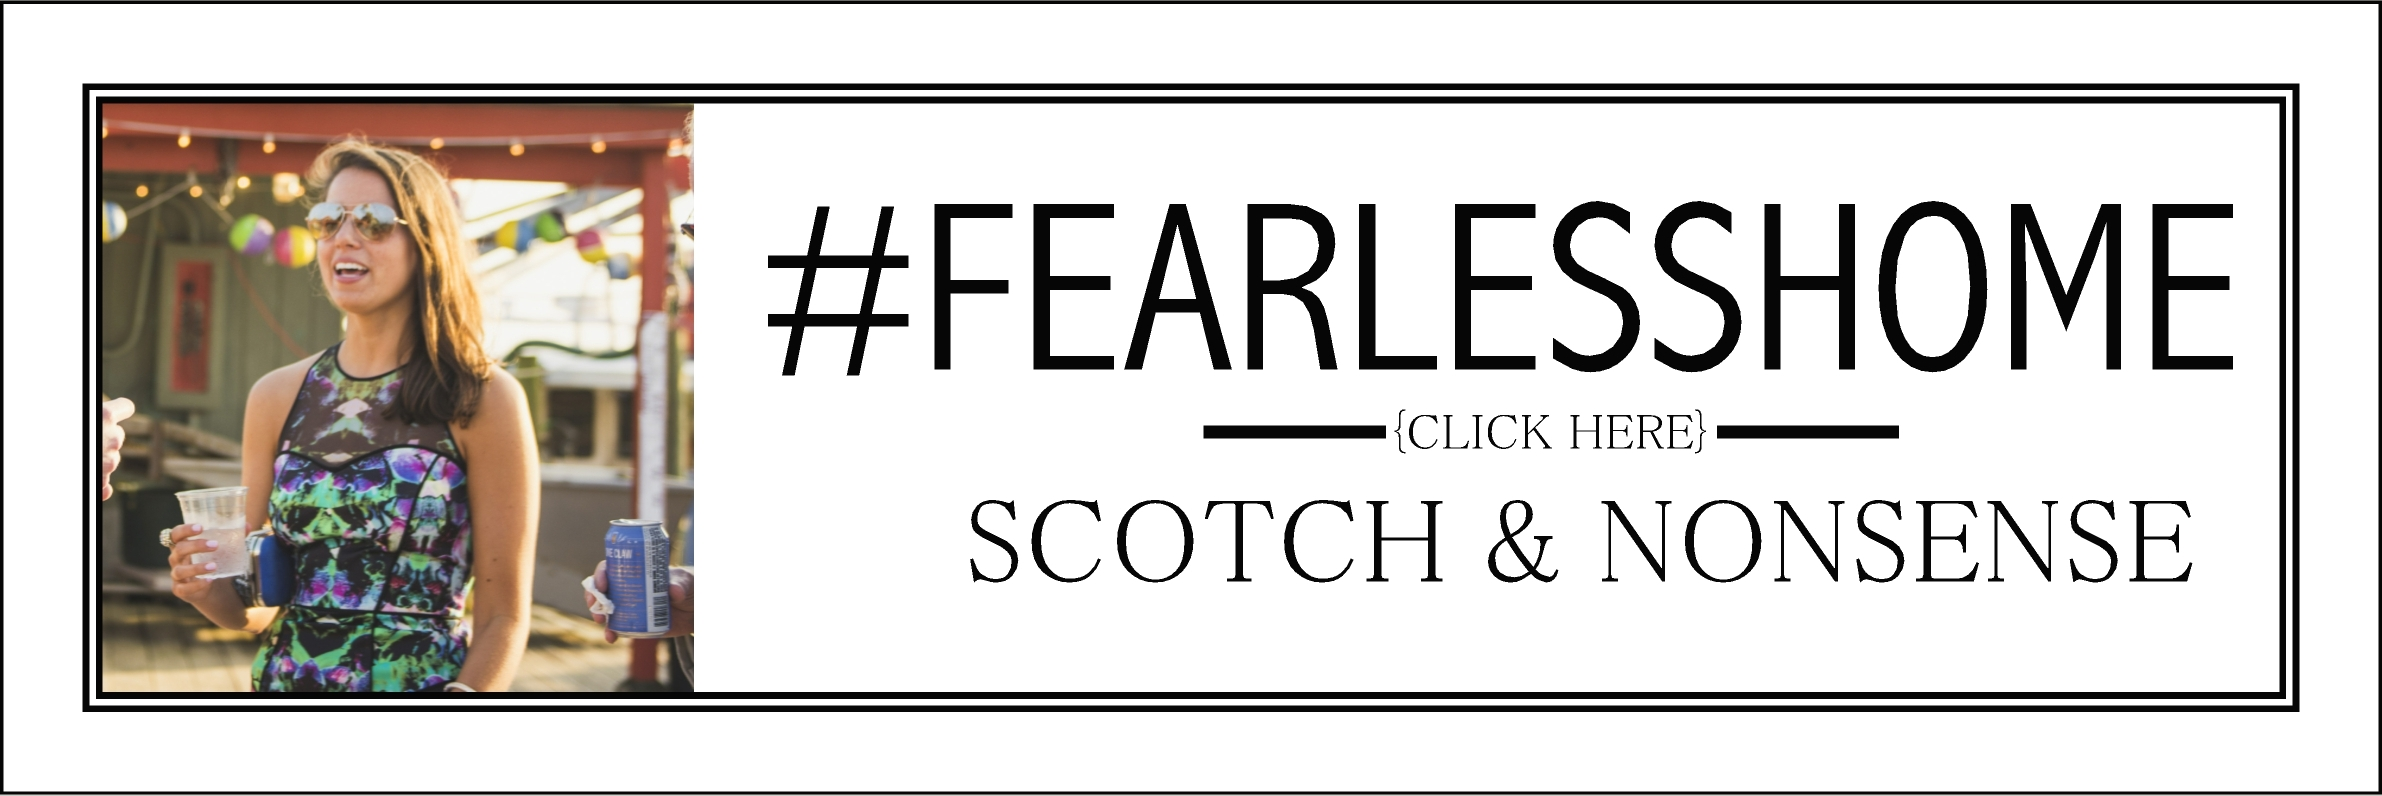 Fearless Home: Scotch & Nonsense